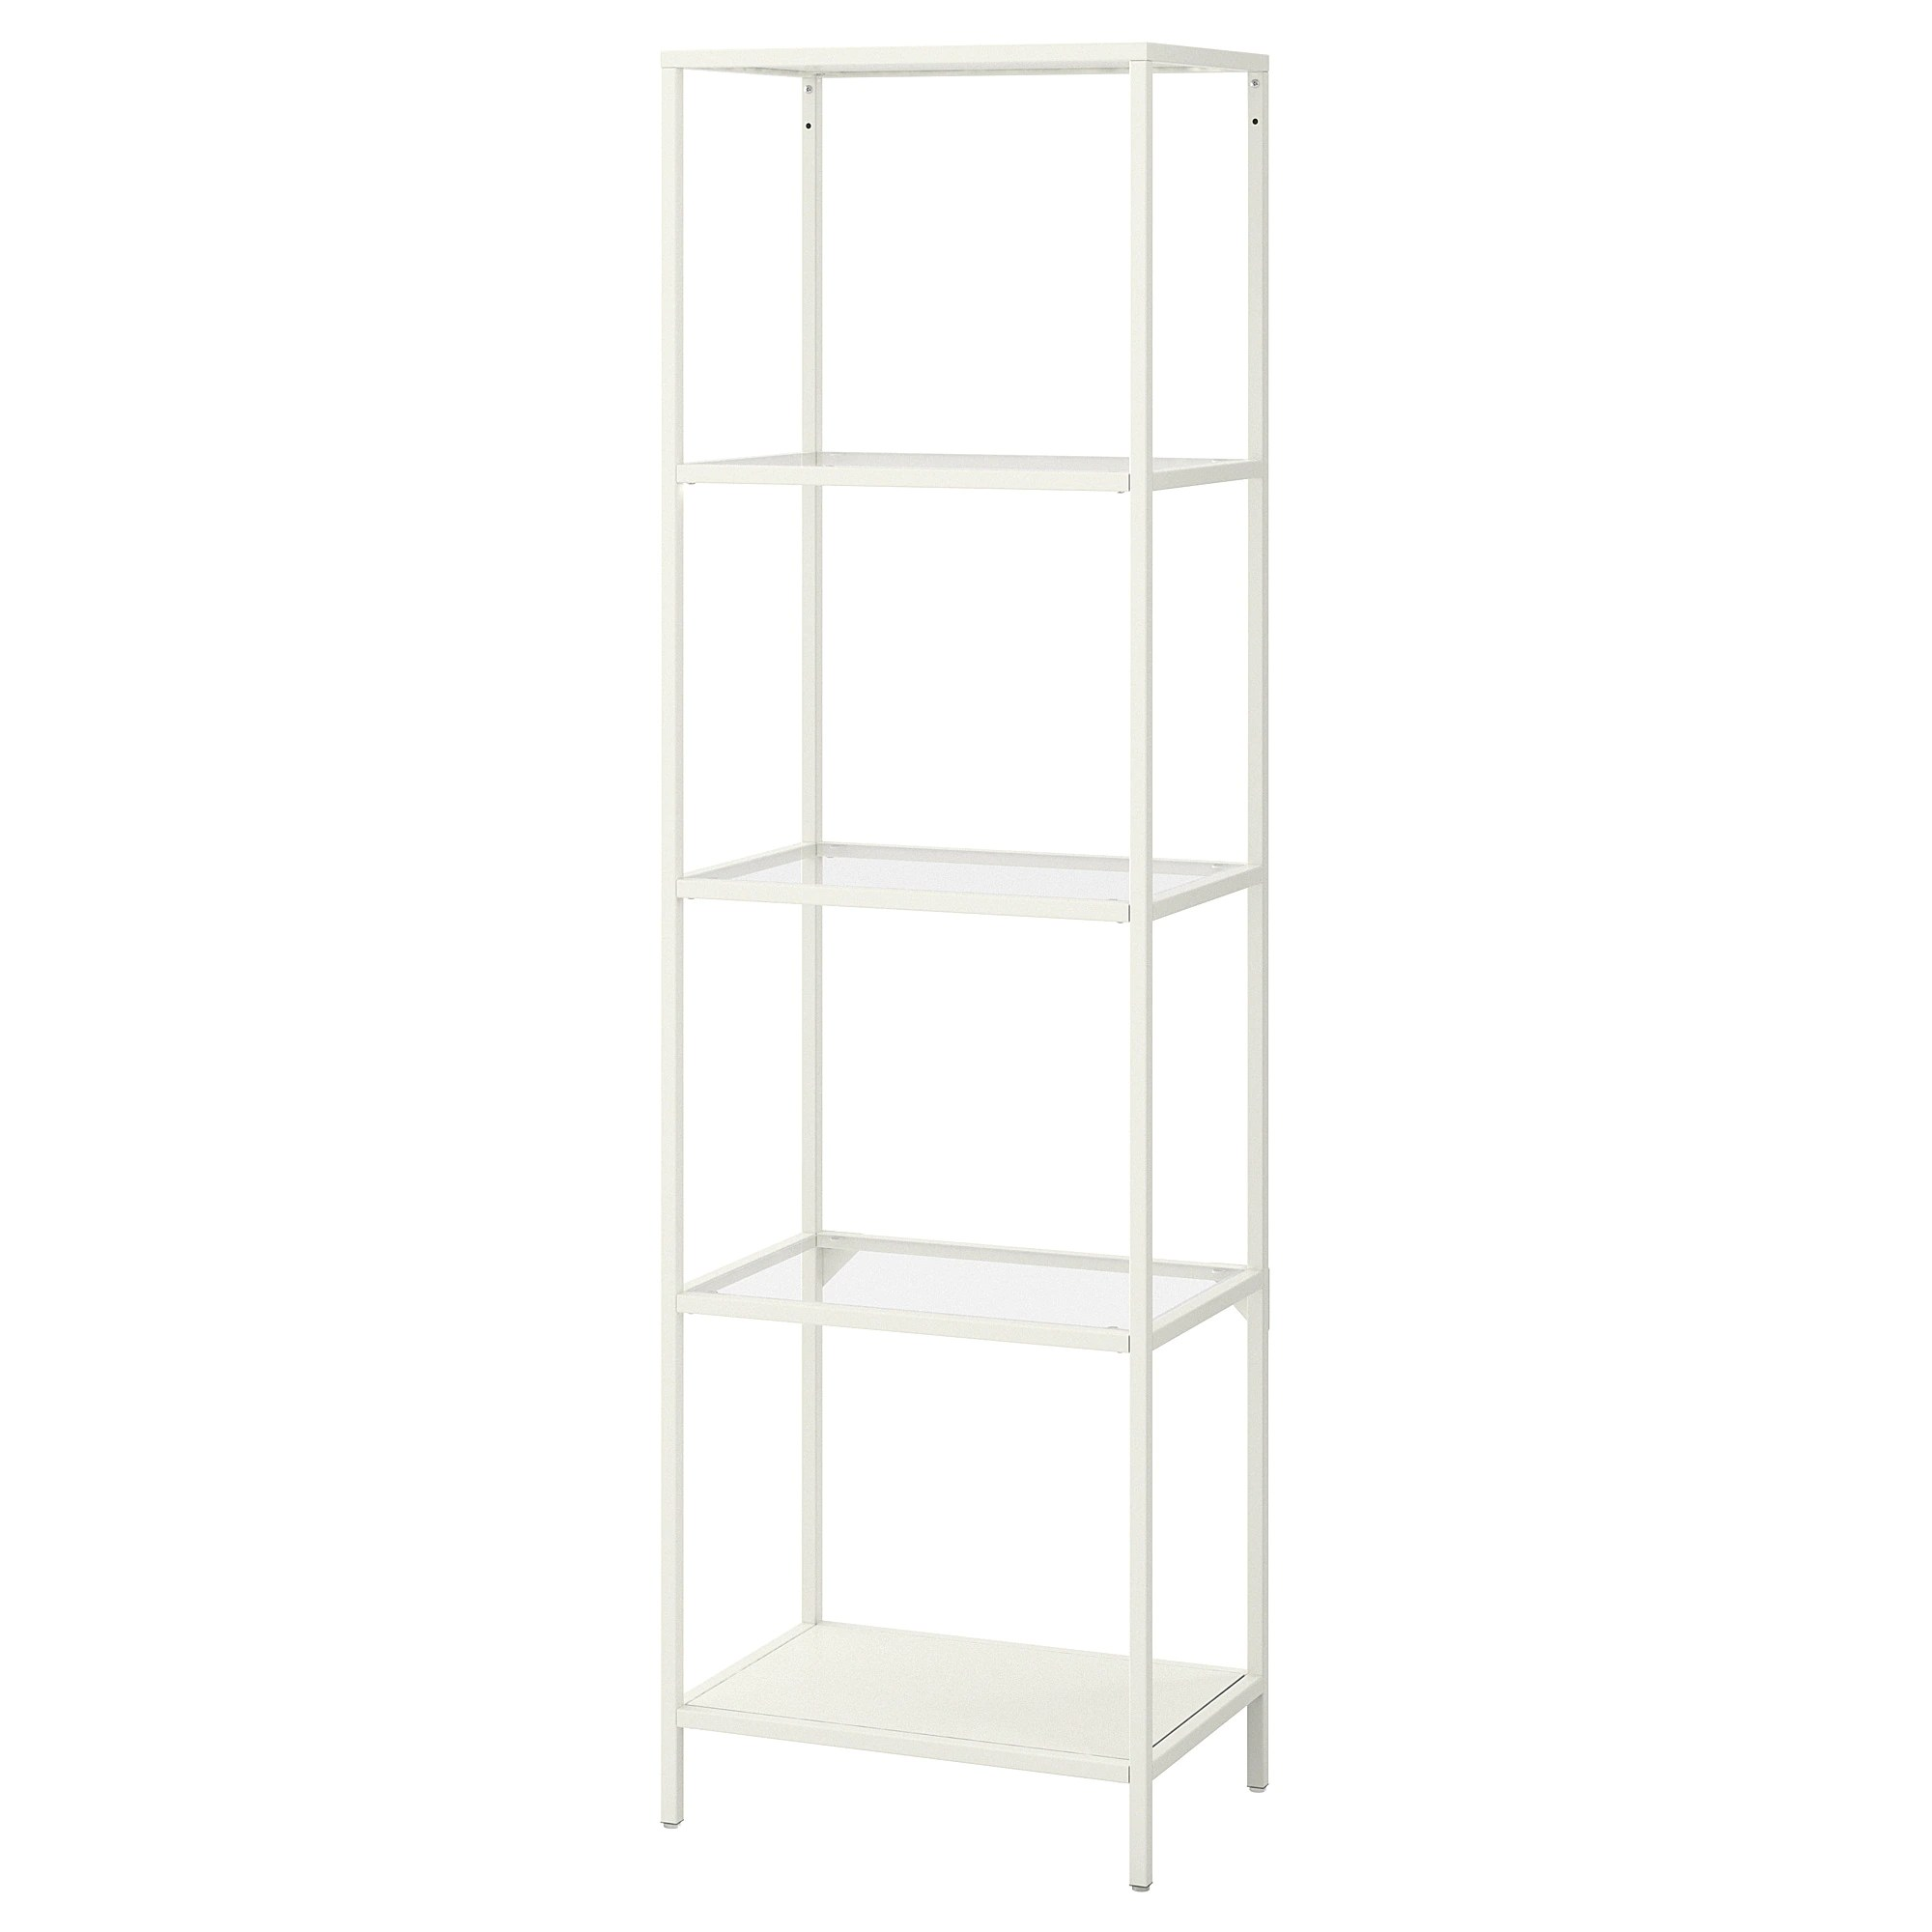 Etagere Besta Ikea VittsjÖ Shelf Unit Black Brown Glass